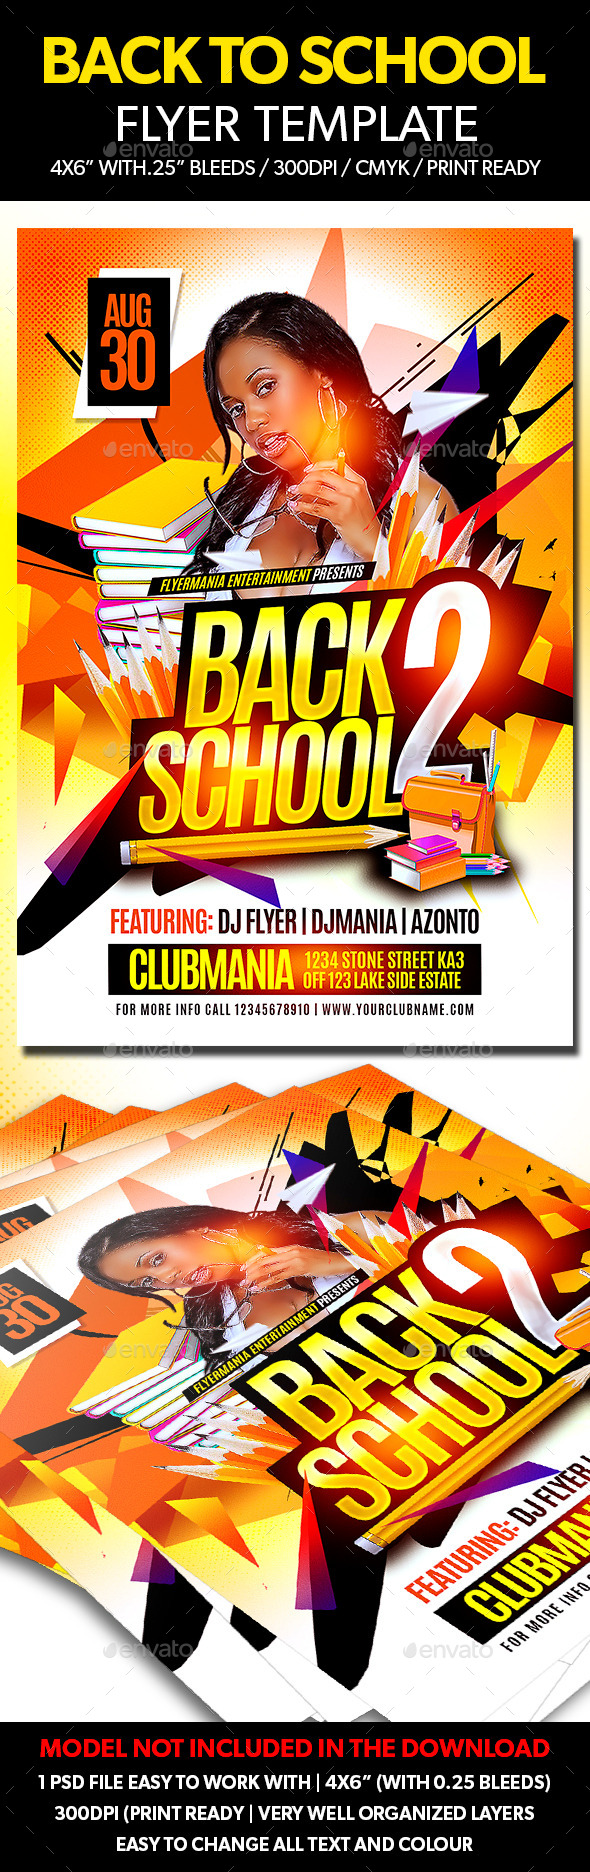 Back to School Flyer Template - Flyers Print Templates